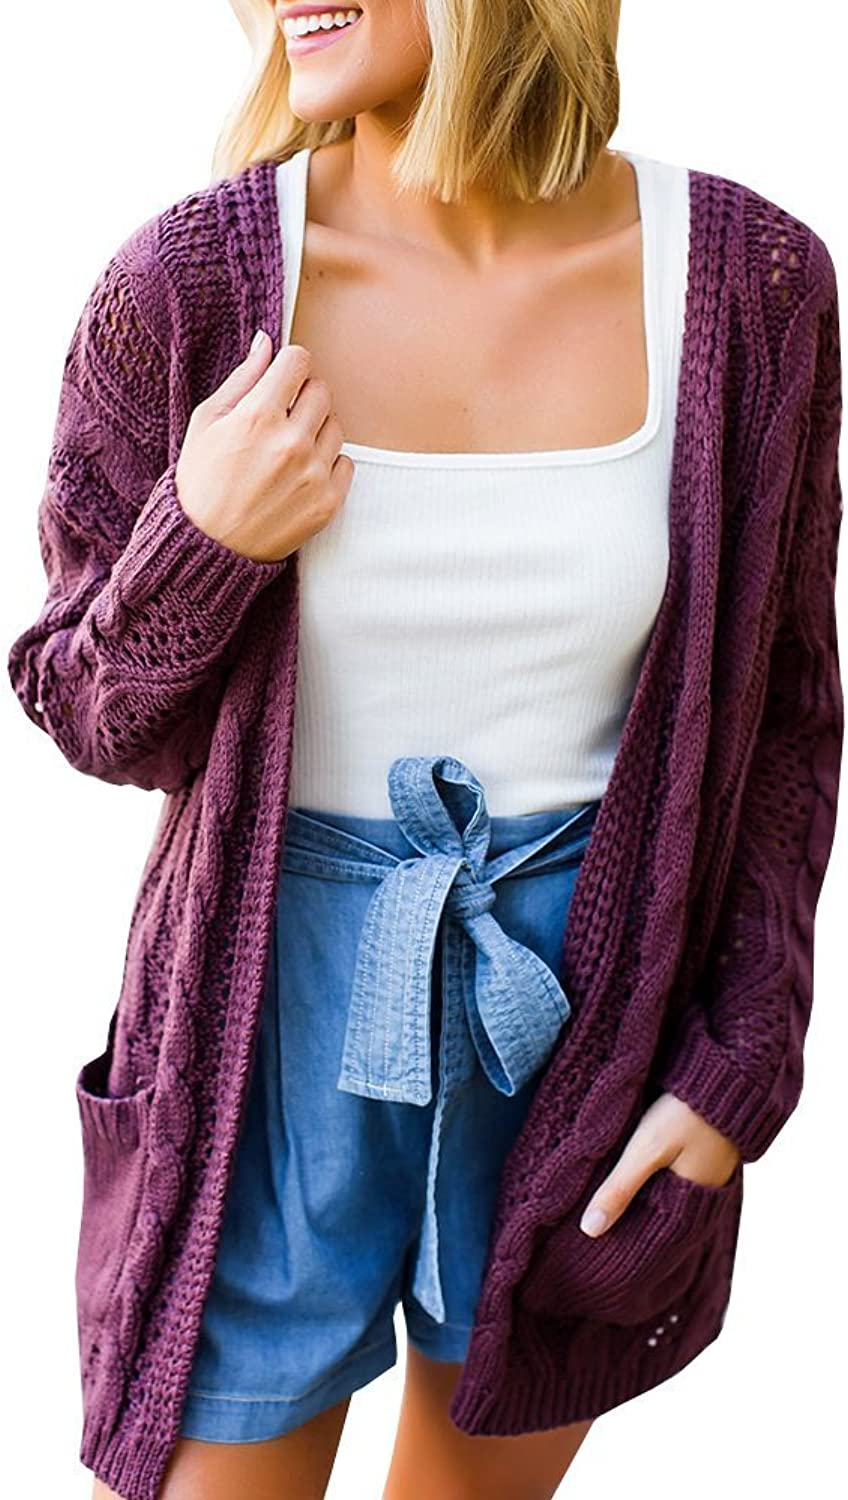 Imysty Womens Oversized Sweater Cardigans Hollow Out Cable Knit Open Front Outwear with Pockets